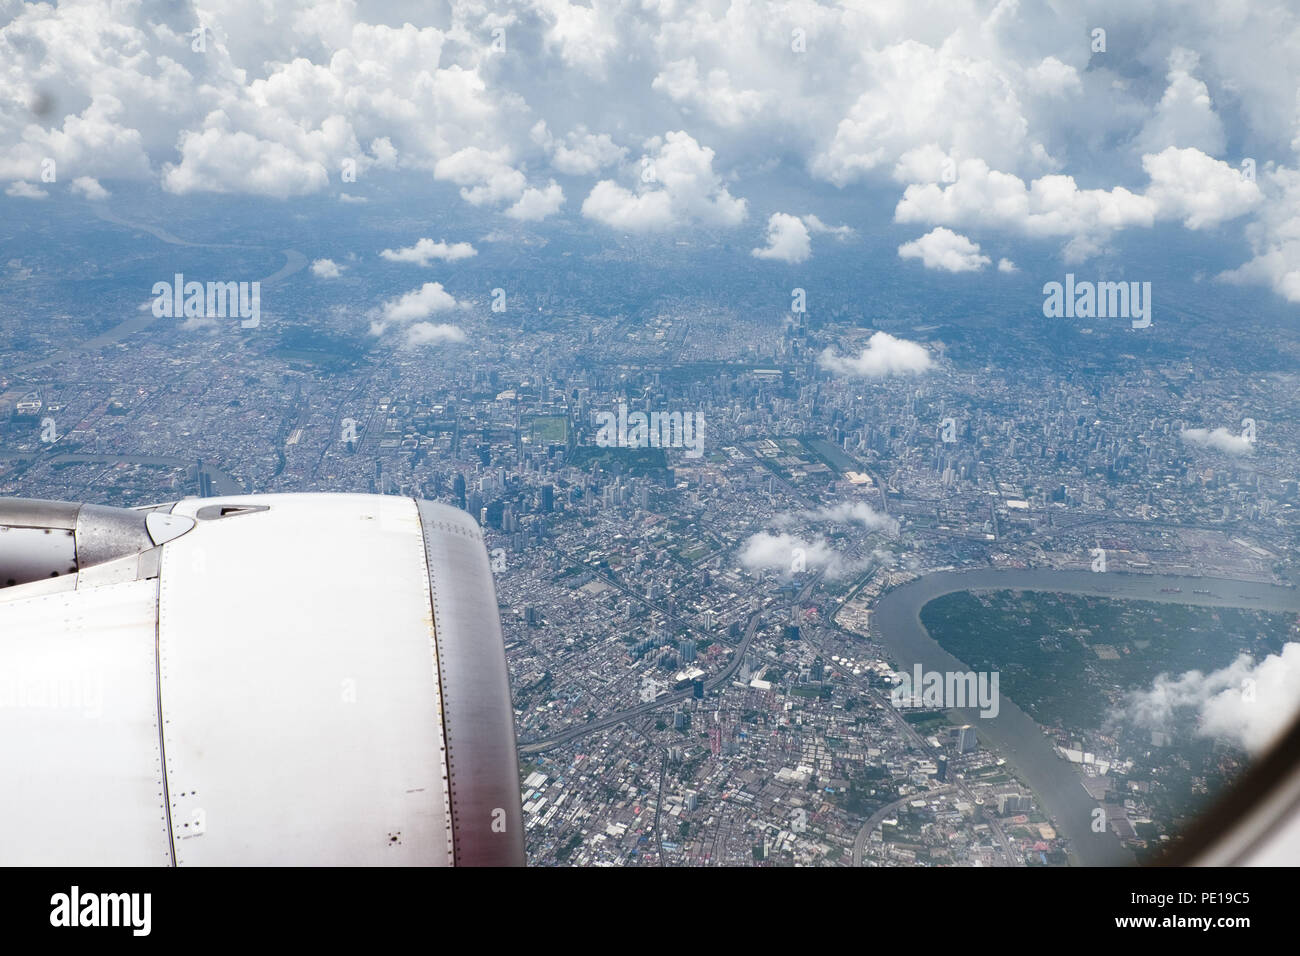 An aerial view over Bangkok, Thailand, from an aeroplane window - Stock Image